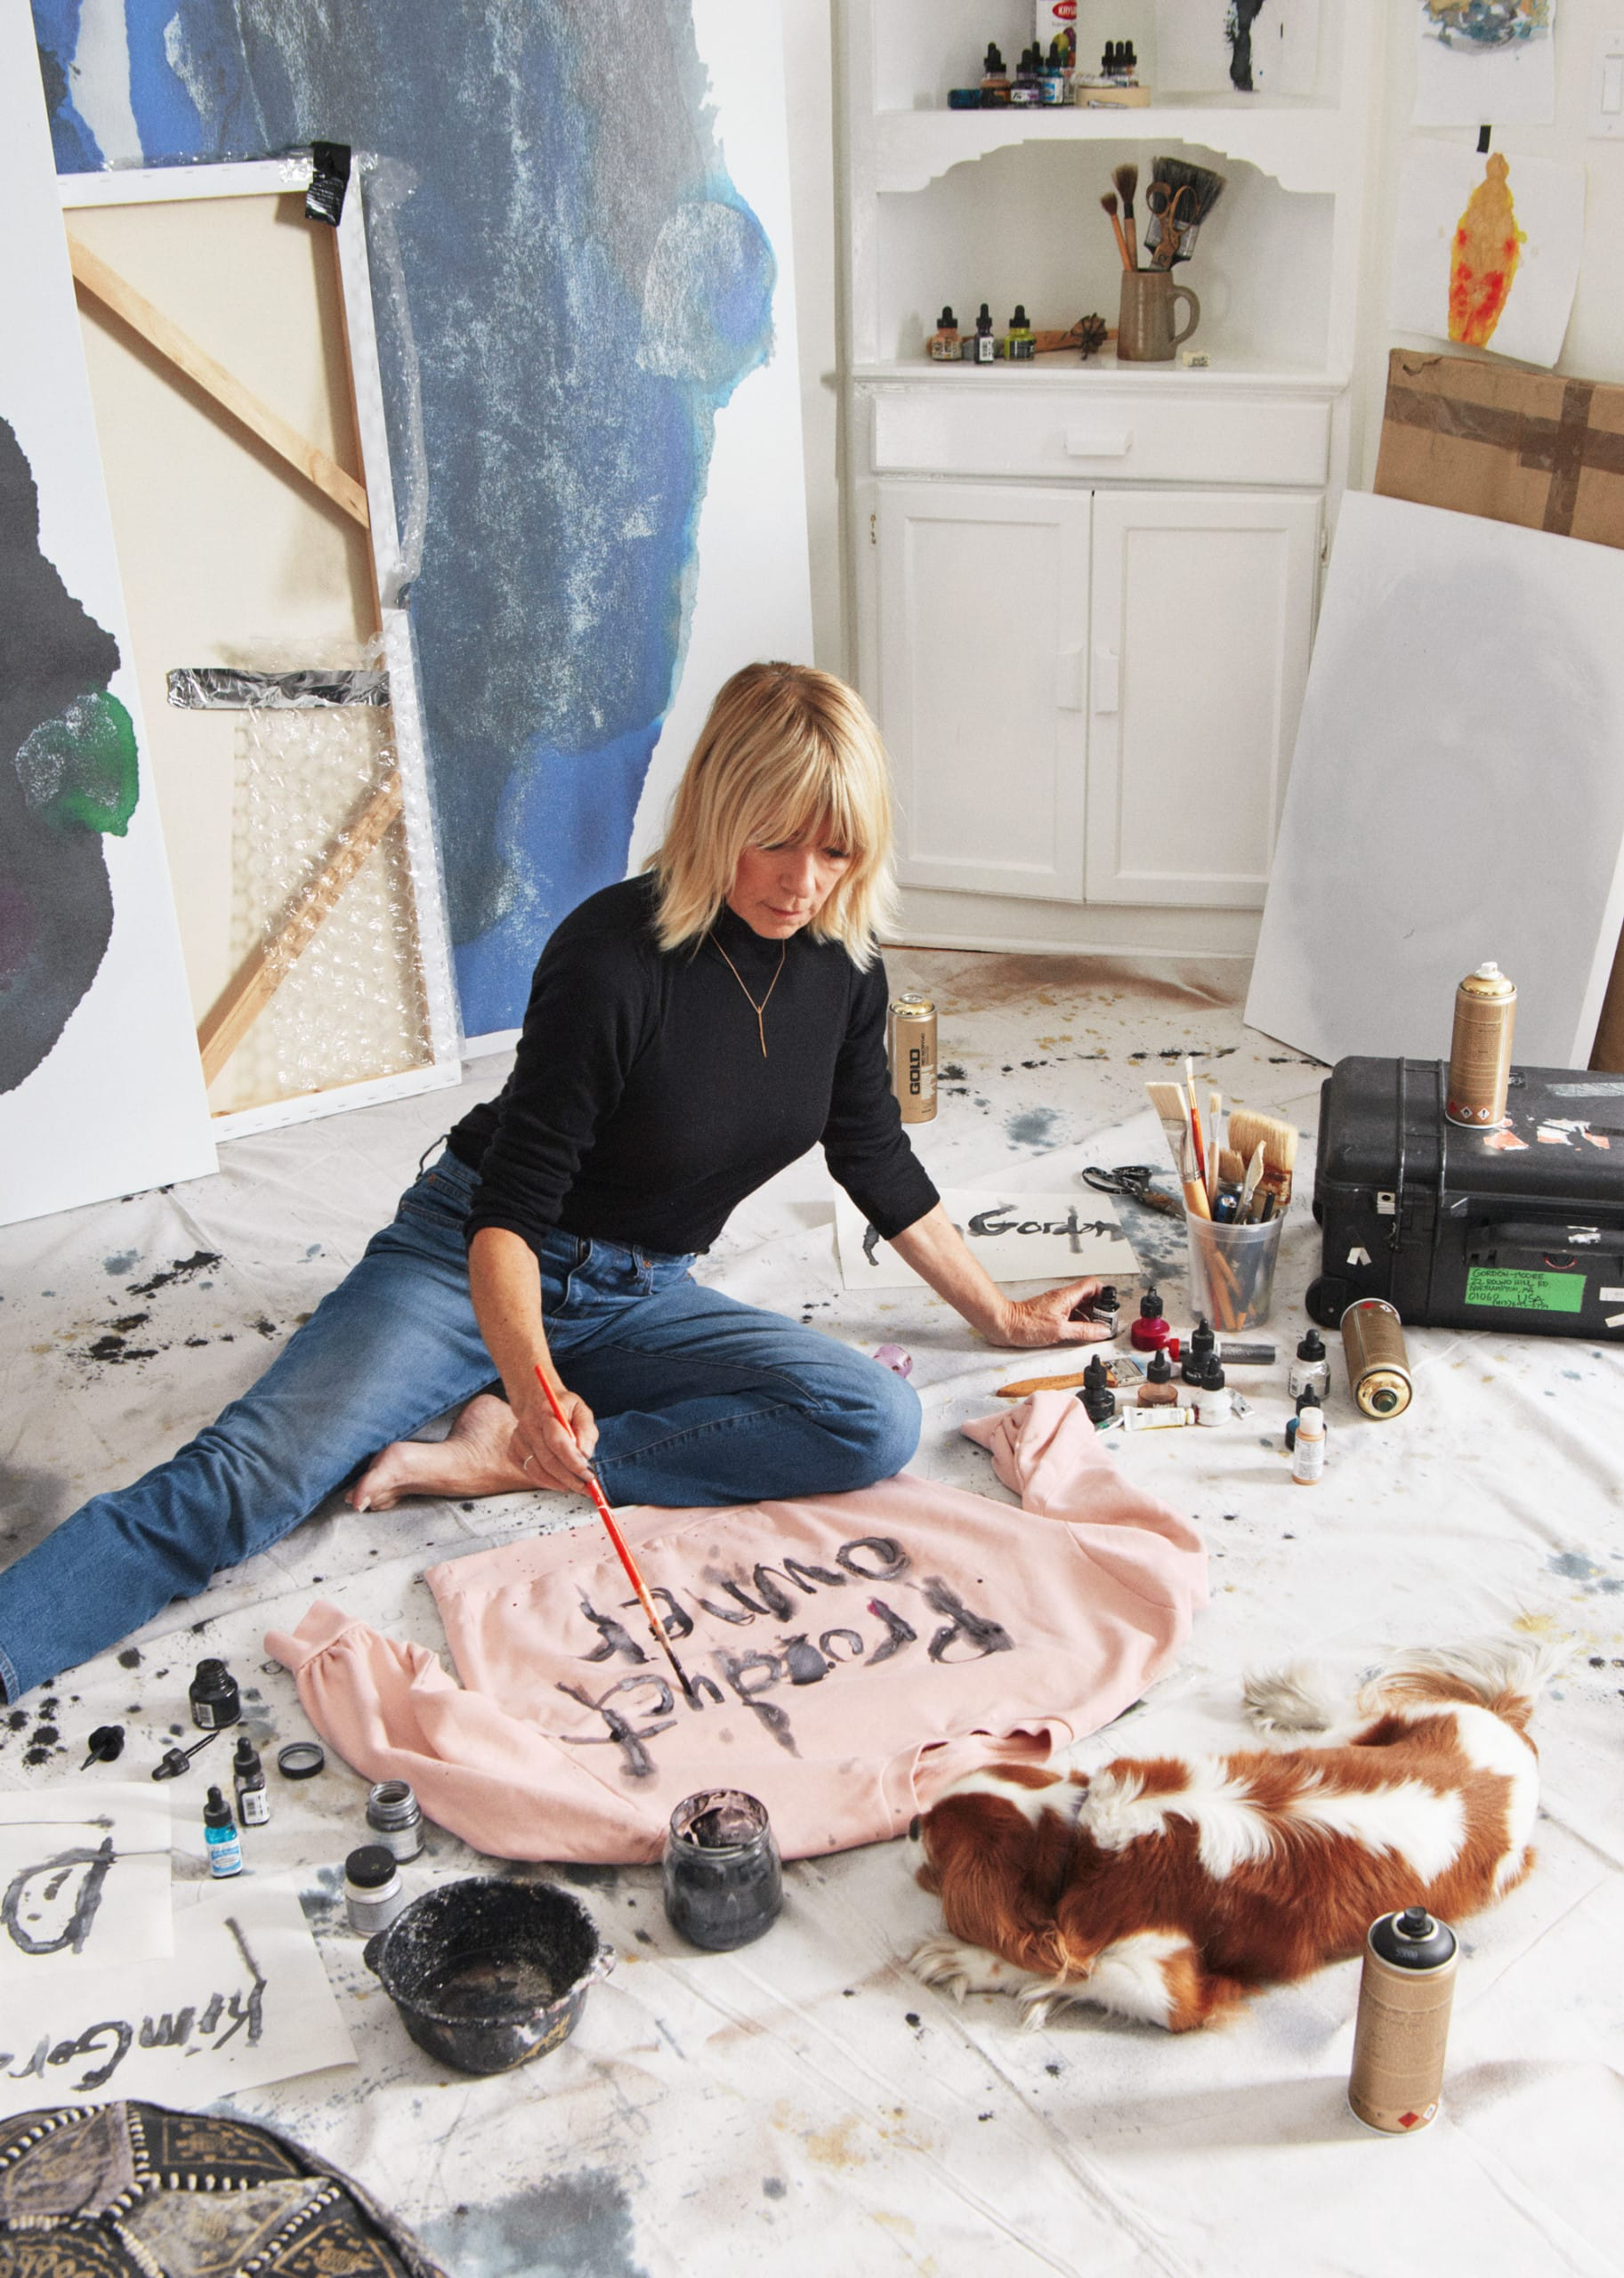 Kim Gordon & Other Stories